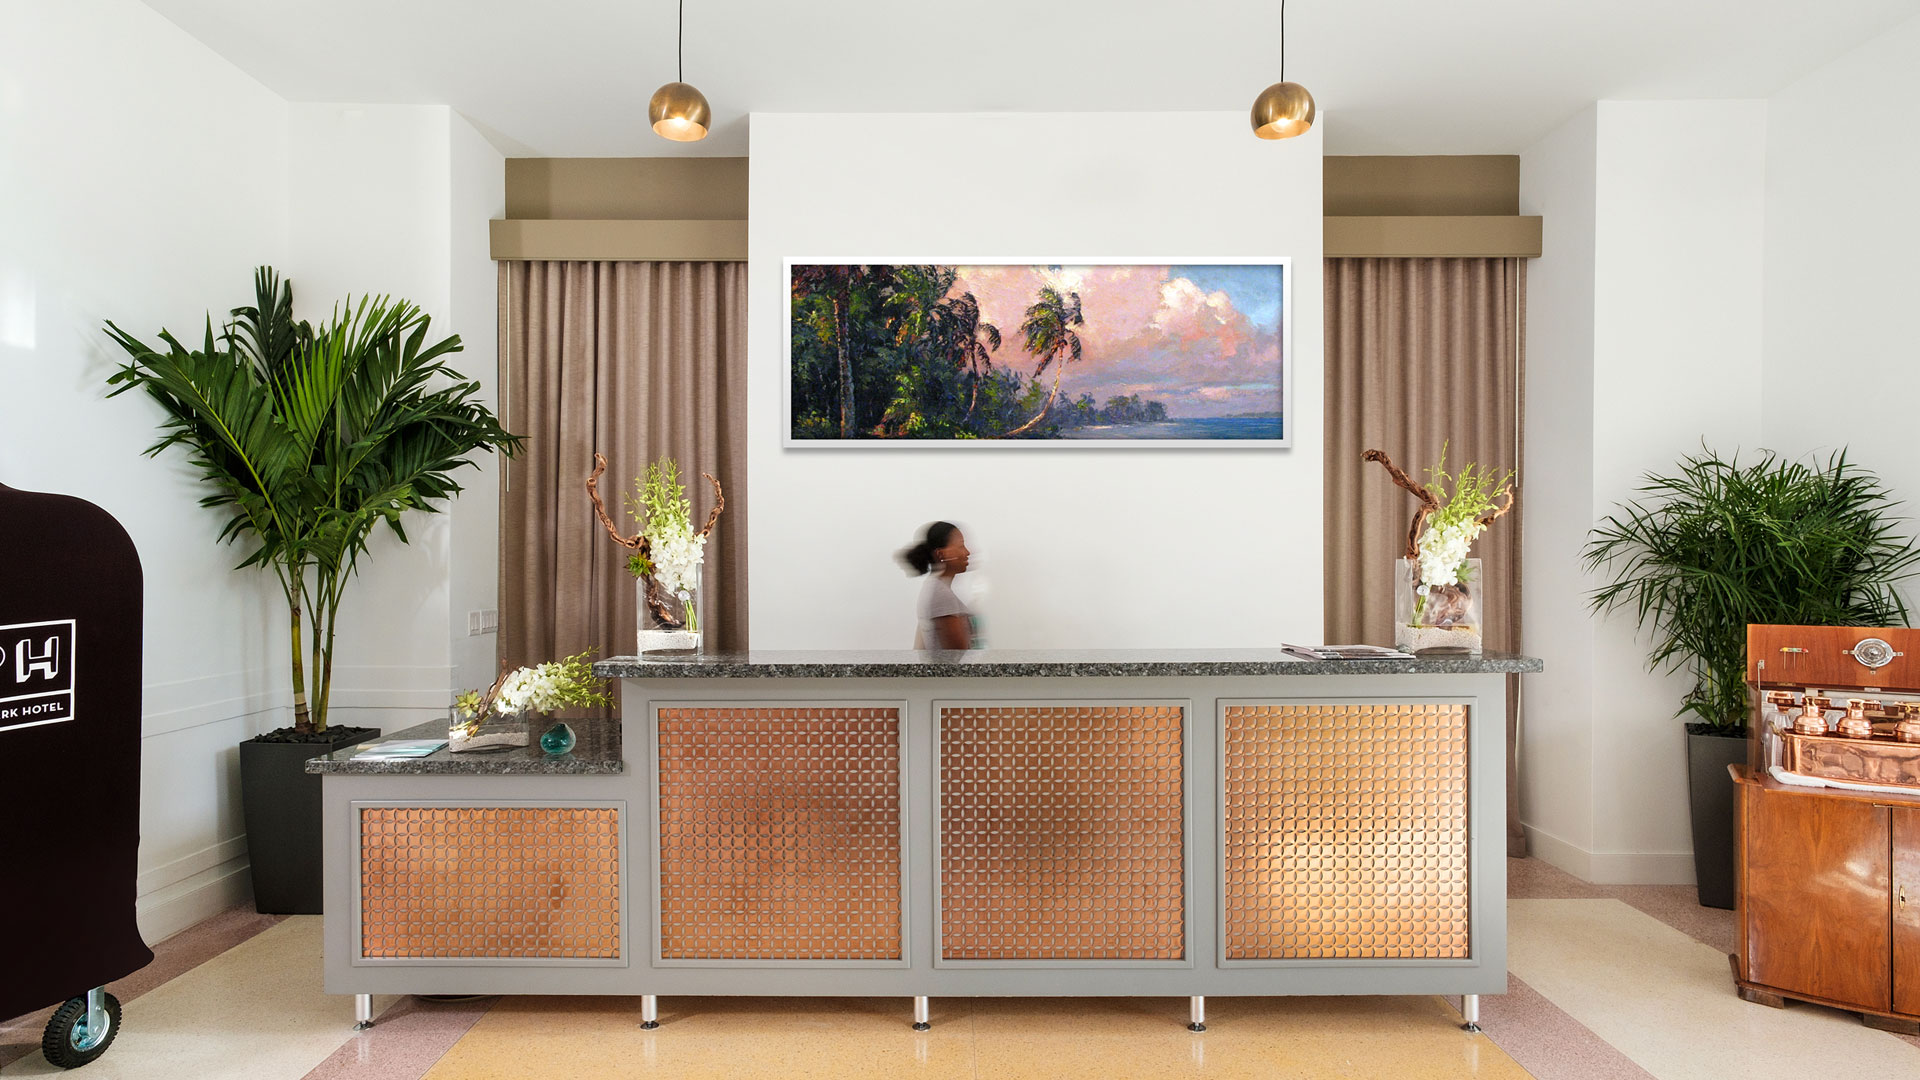 flat screen tv and free wifi the dcor is light and airy with watercolor style wallpaper and wood panel flooring we are here for the wallpaper